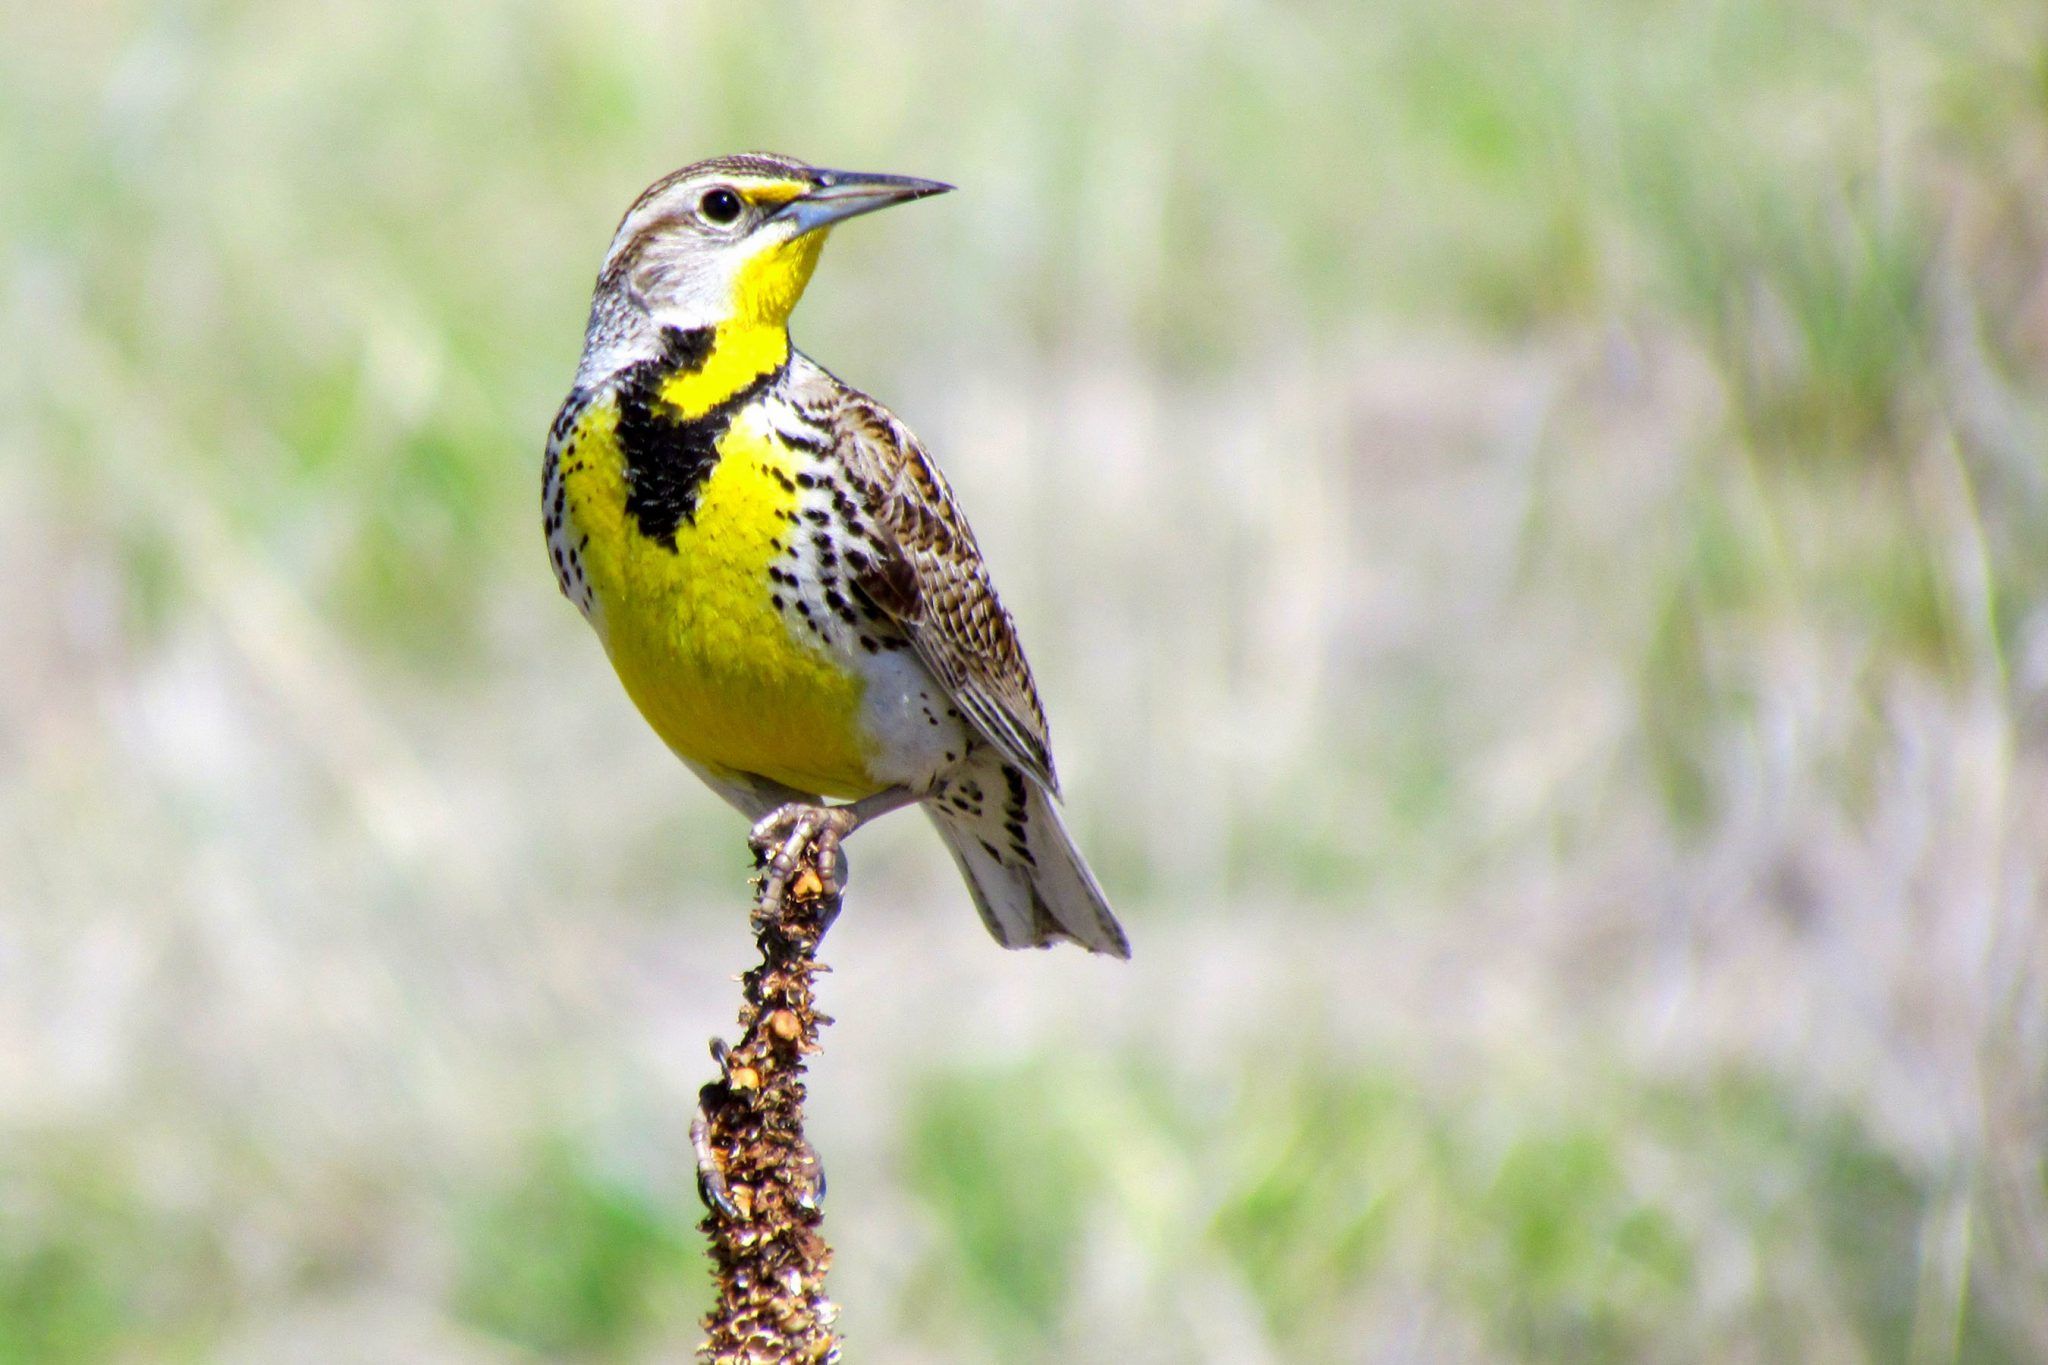 Western Meadowlark (male). Photo by Deanna Beutler